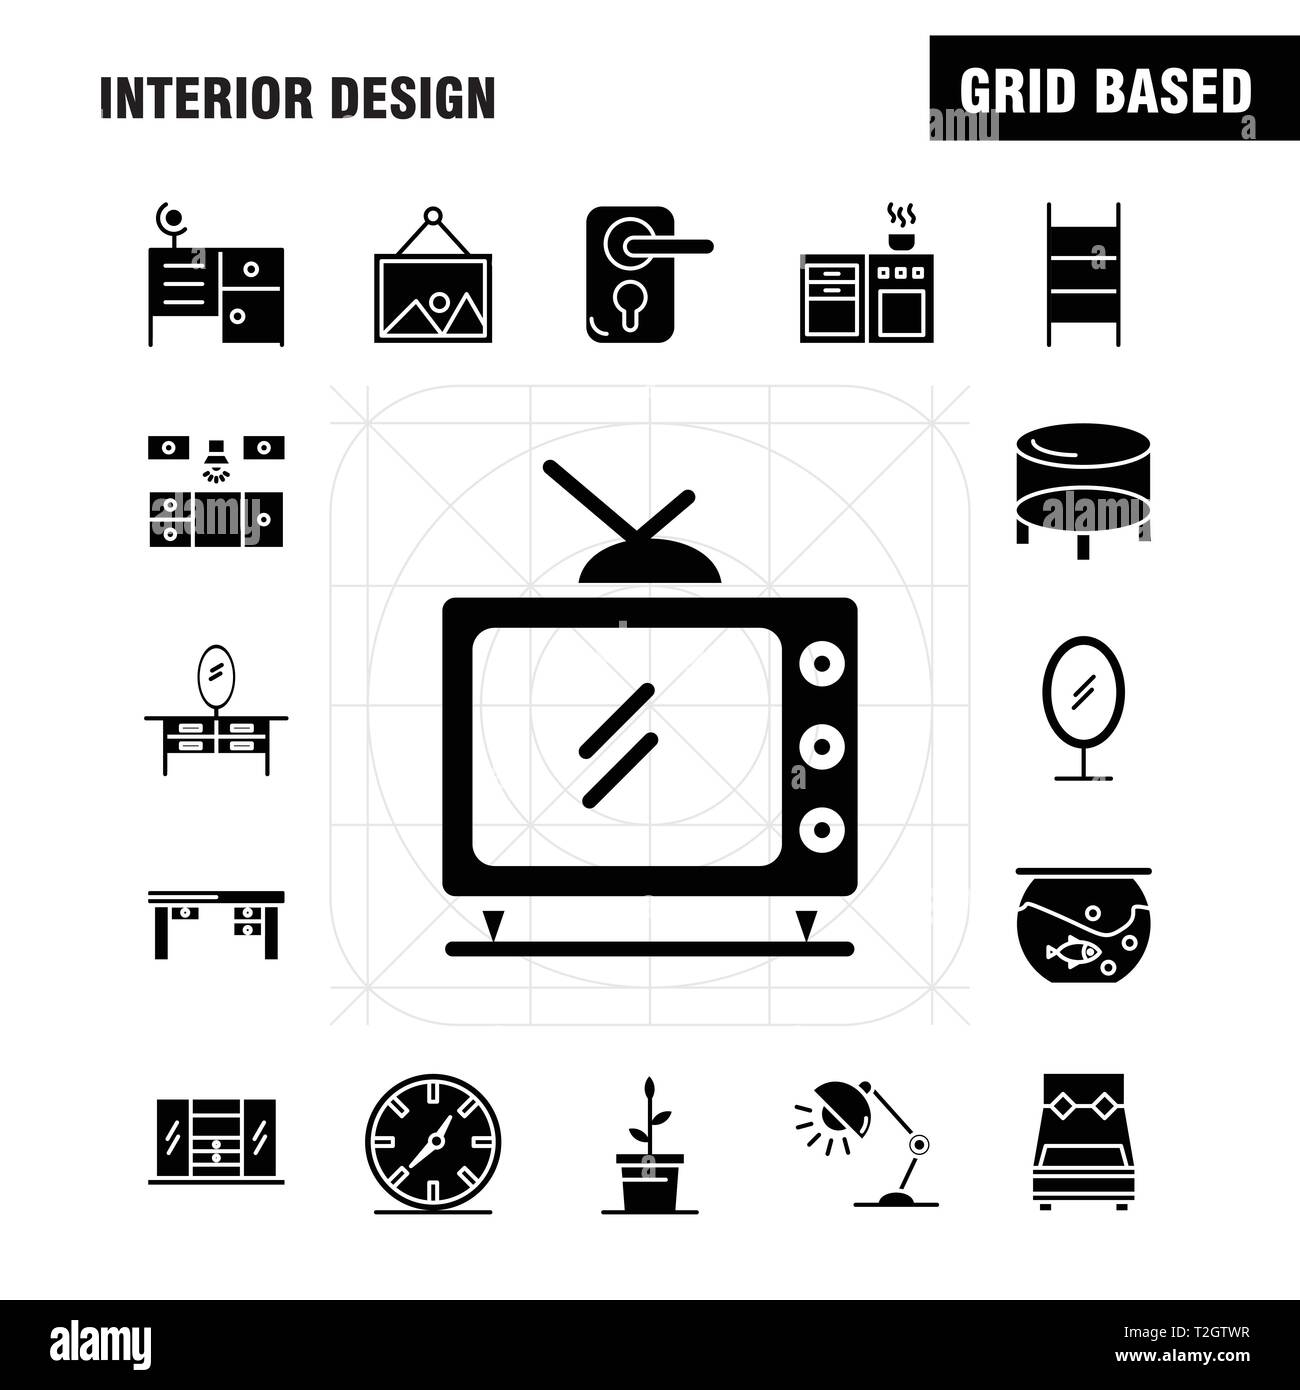 Interior Design Solid Glyph Icons Set For Infographics, Mobile UX/UI Kit And Print Design. Include: Bedroom, Cupboard, Furniture, House, Wardrobe, Tel - Stock Image